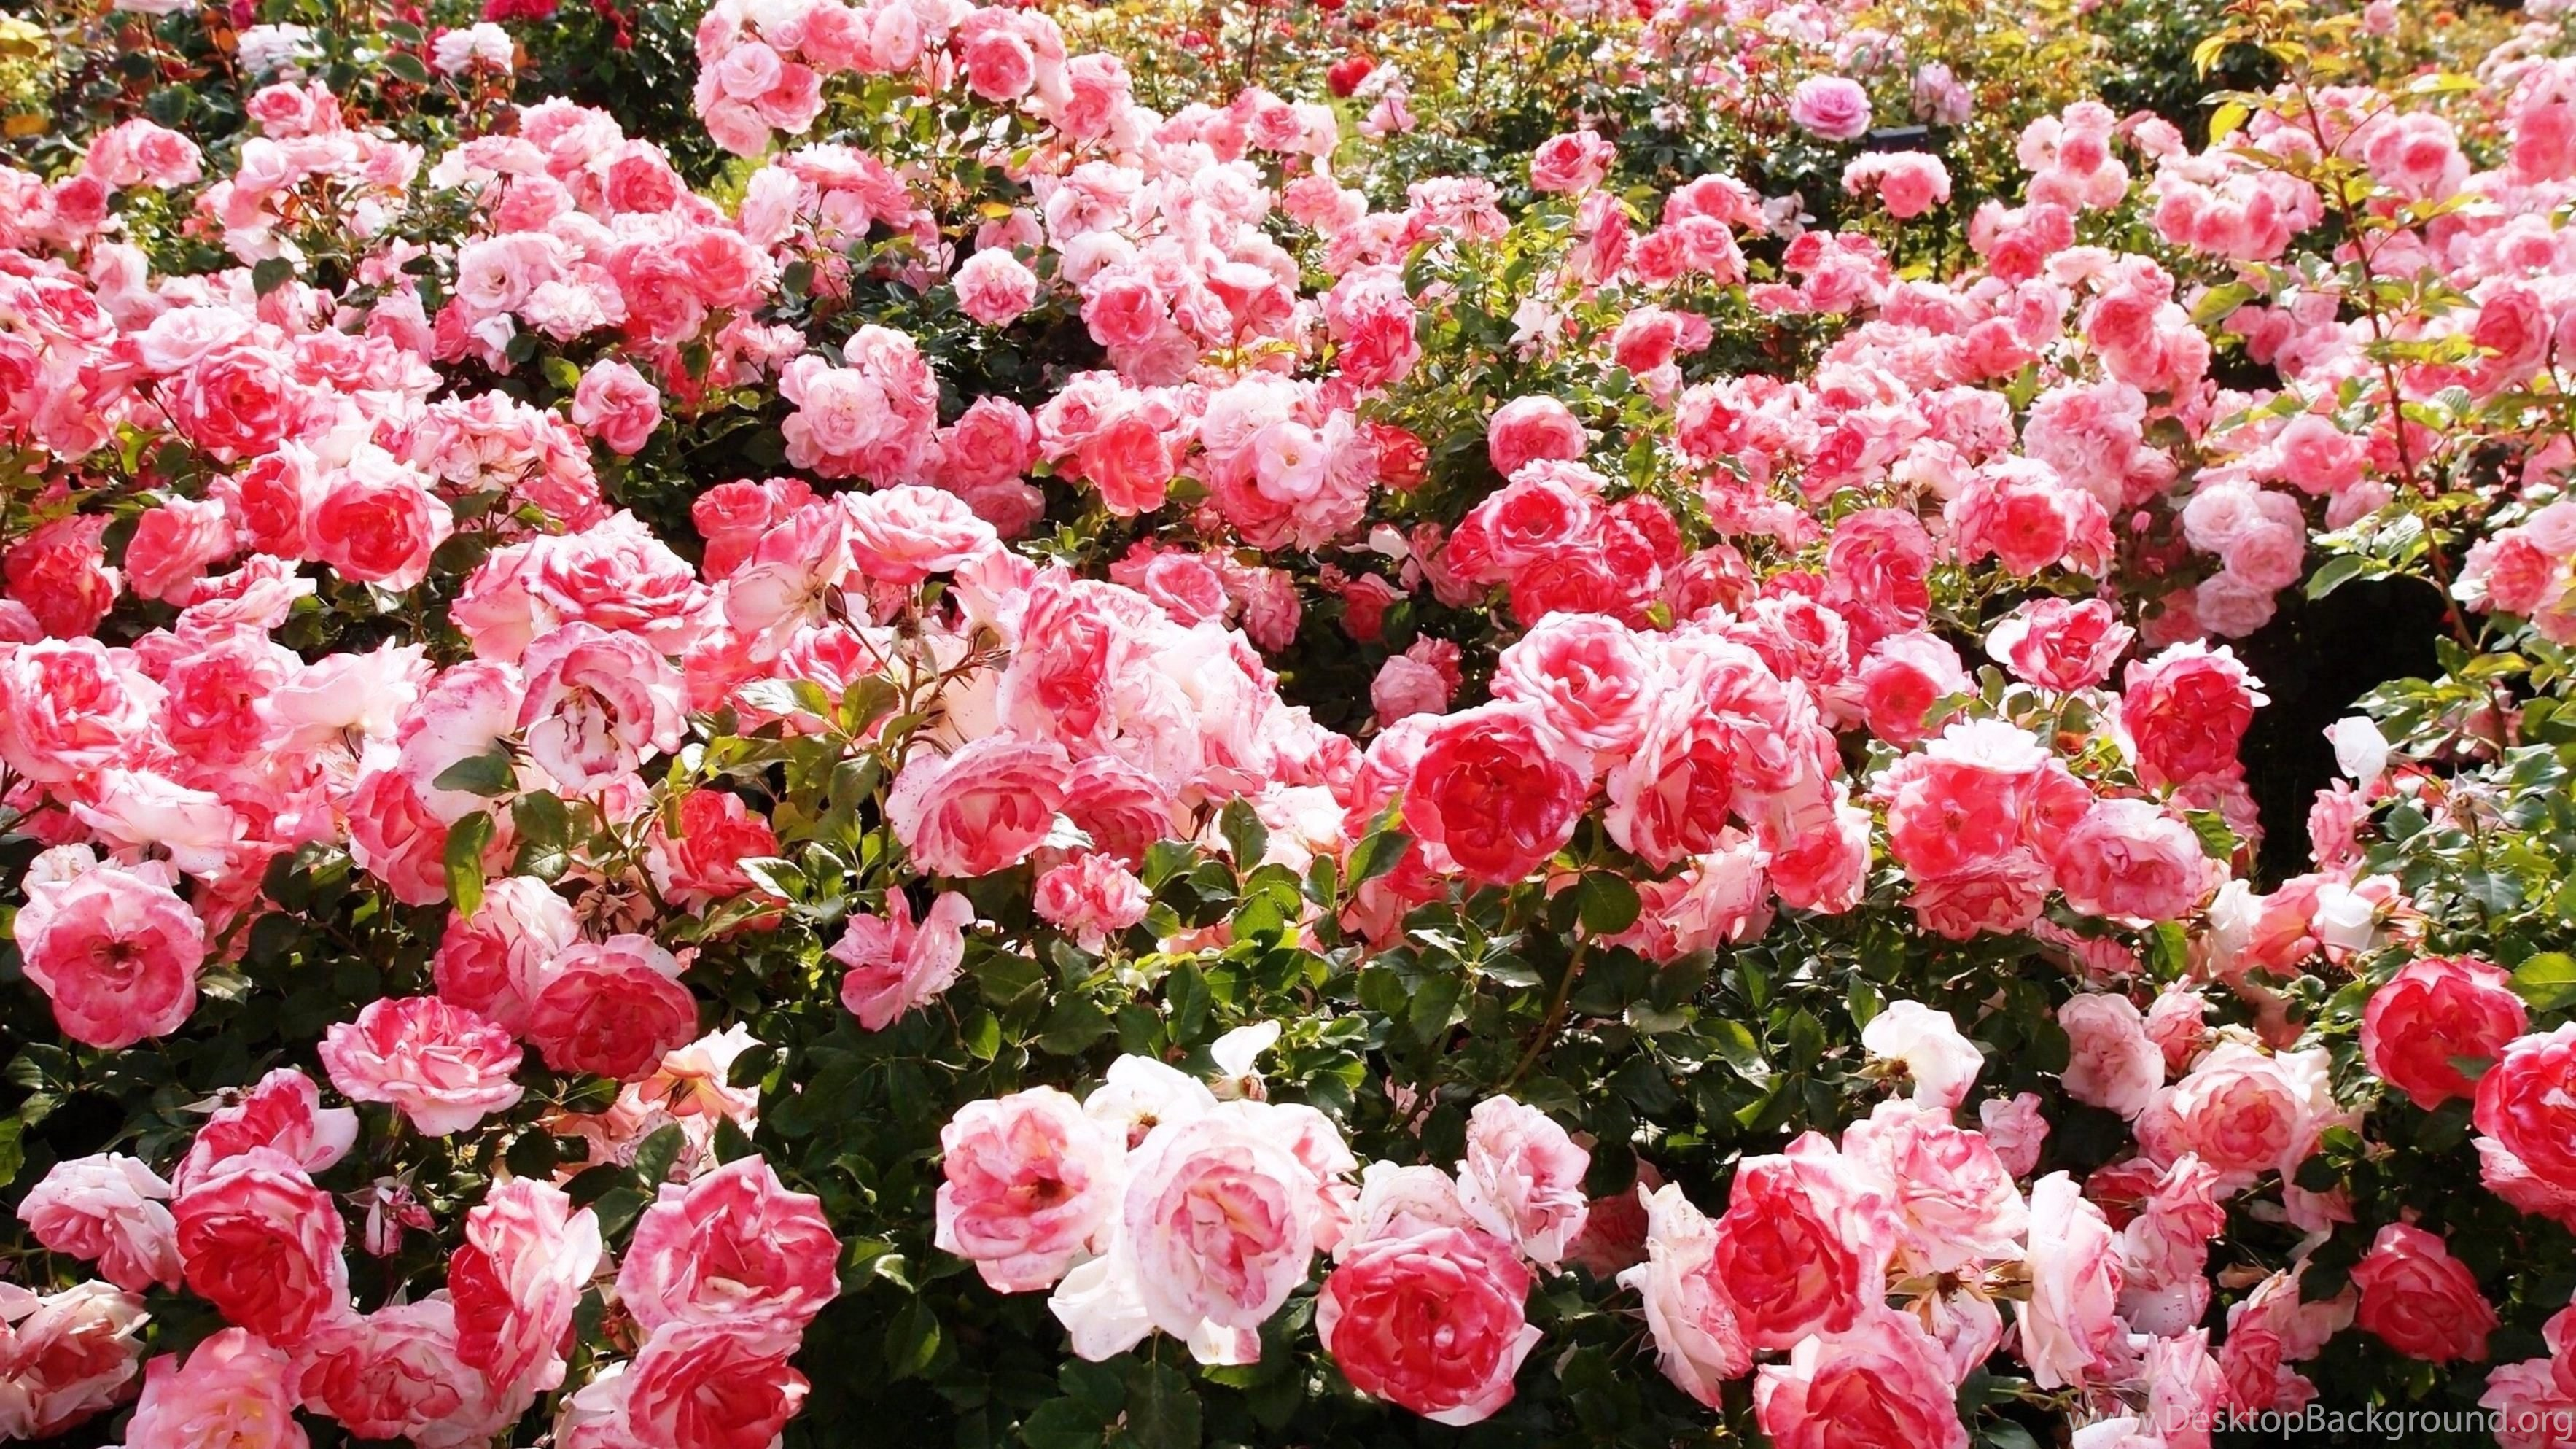 rose garden wallpaper (51+ pictures)